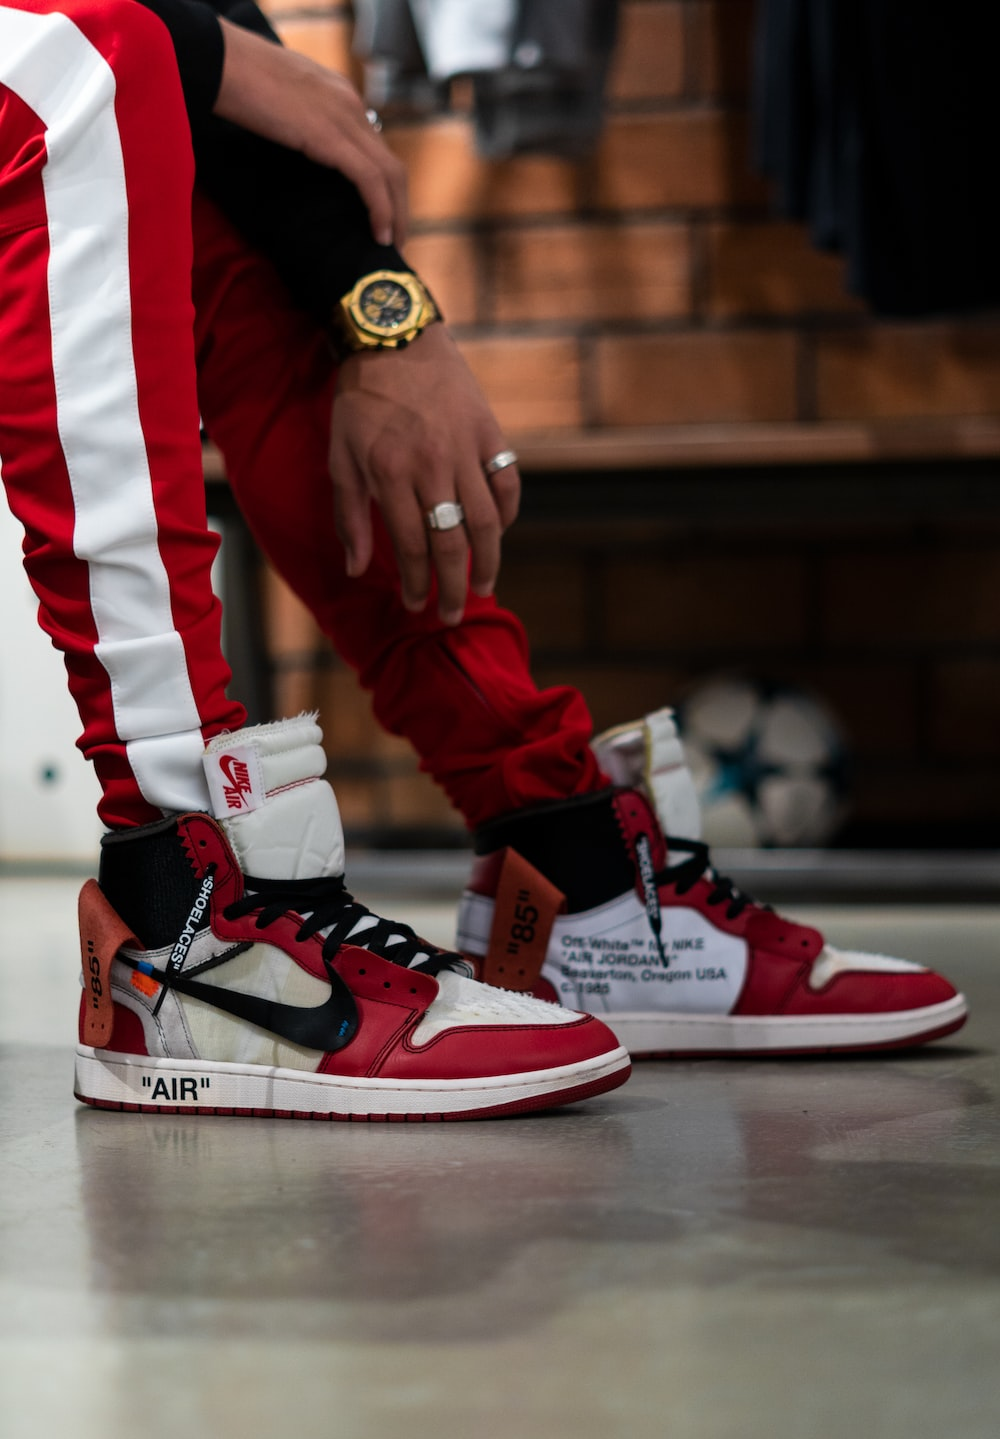 finest selection 36f2c b8459 person wearing chicago Air Jordan 1 x Off-white